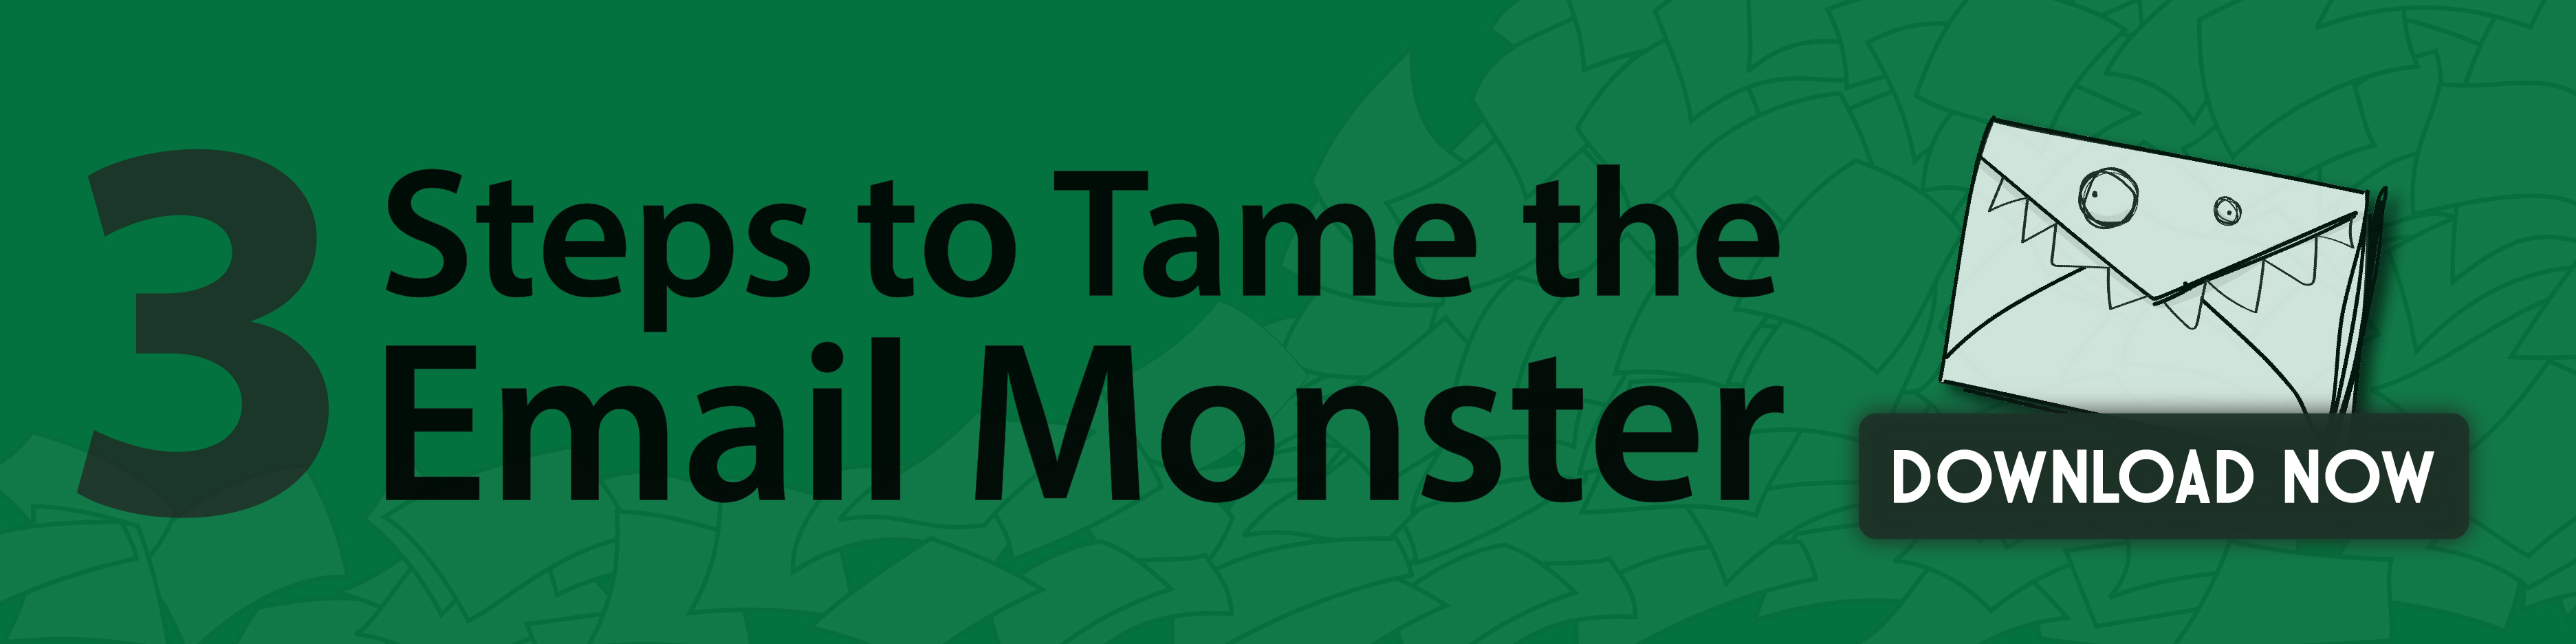 3 steps to tame the email monster download